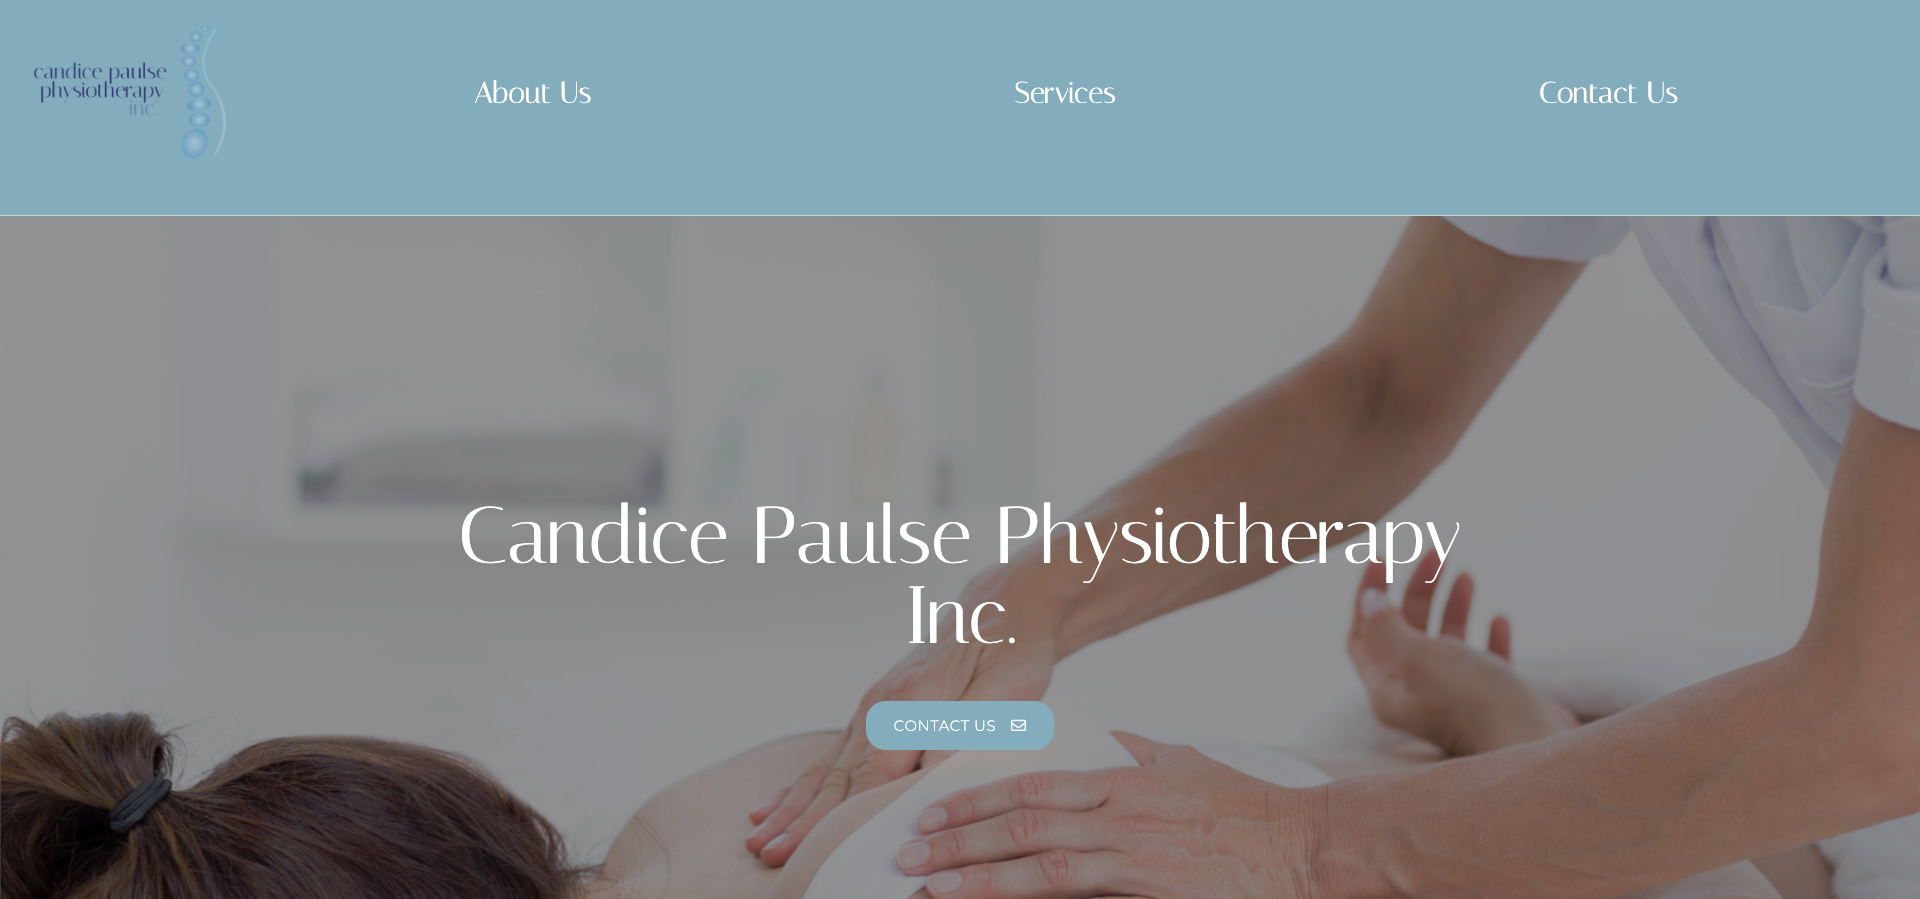 Candice Paulse Physiotherapy Website